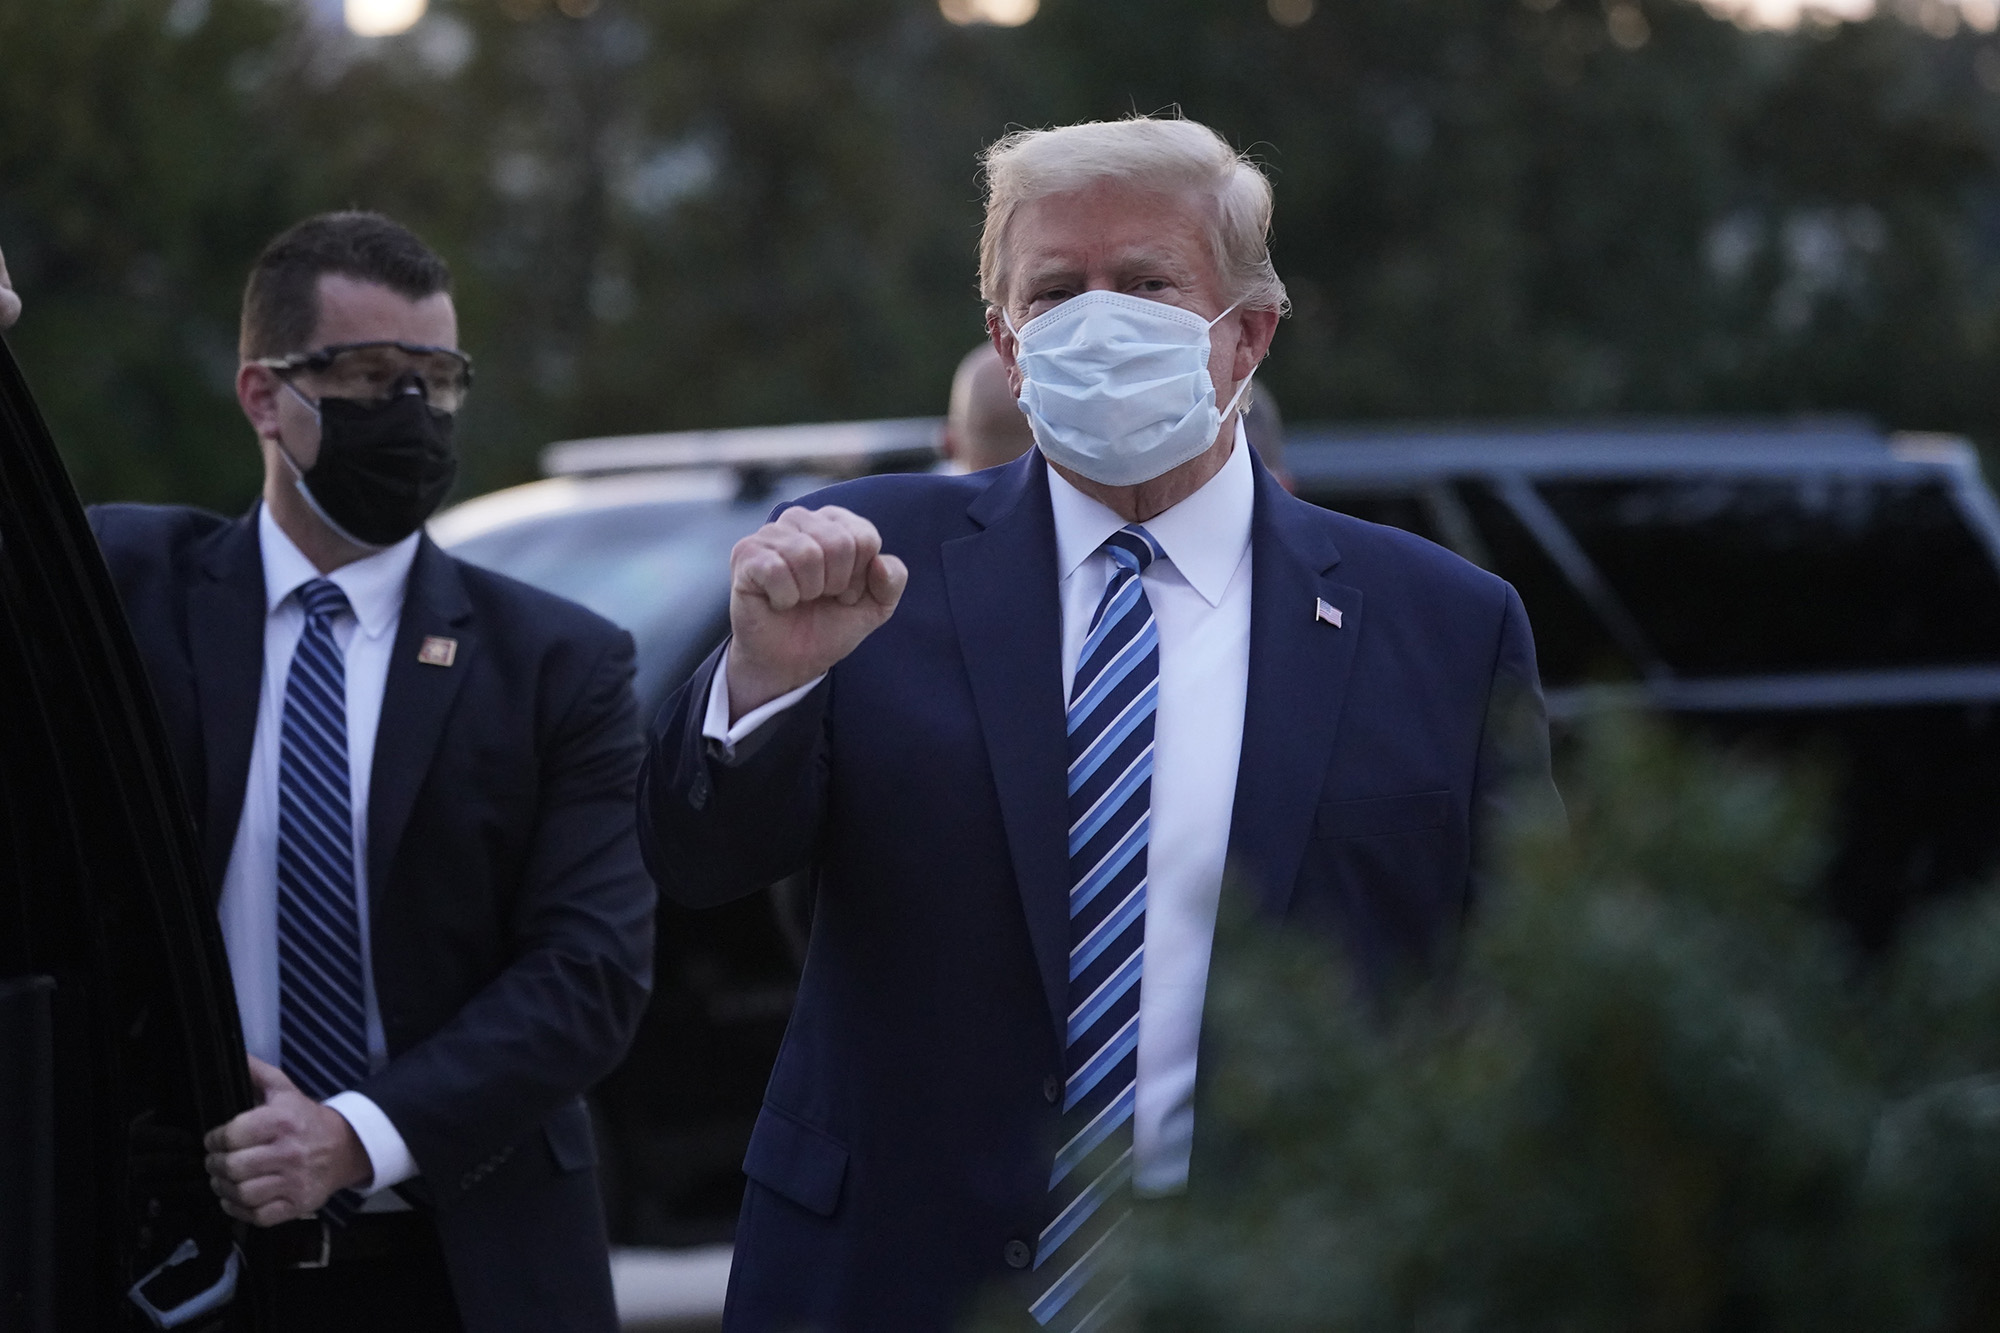 US President Donald Trump gestures outside Walter Reed National Military Medical Center in Bethesda, Maryland, on October 5.